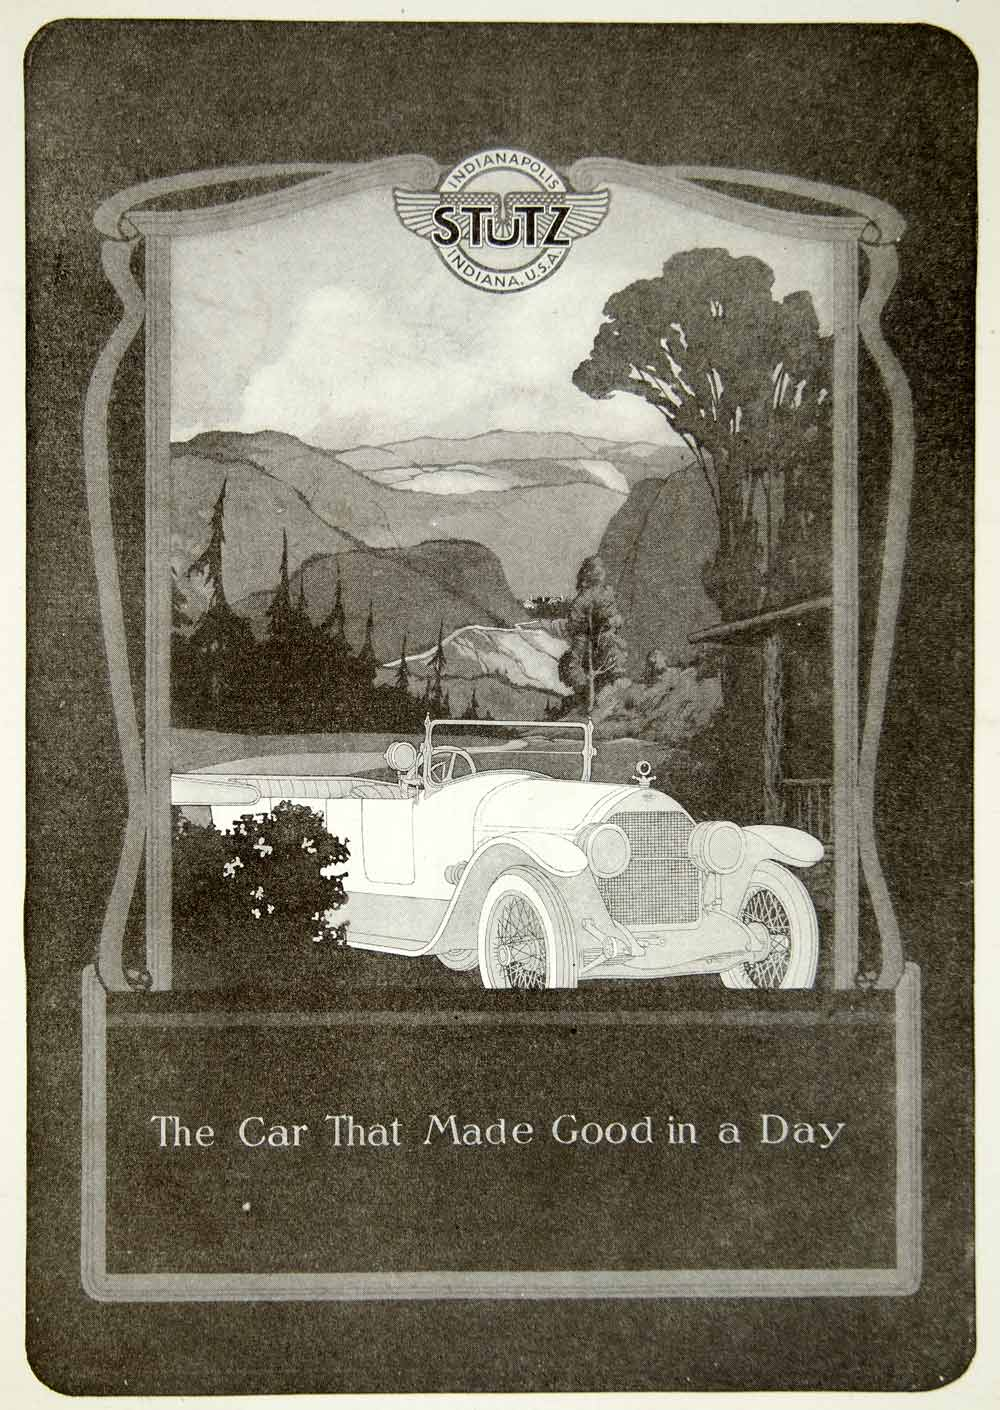 1920 Ad Vintage Harry C Stutz Luxury Car Automobile Indianapolis Indiana YPP1